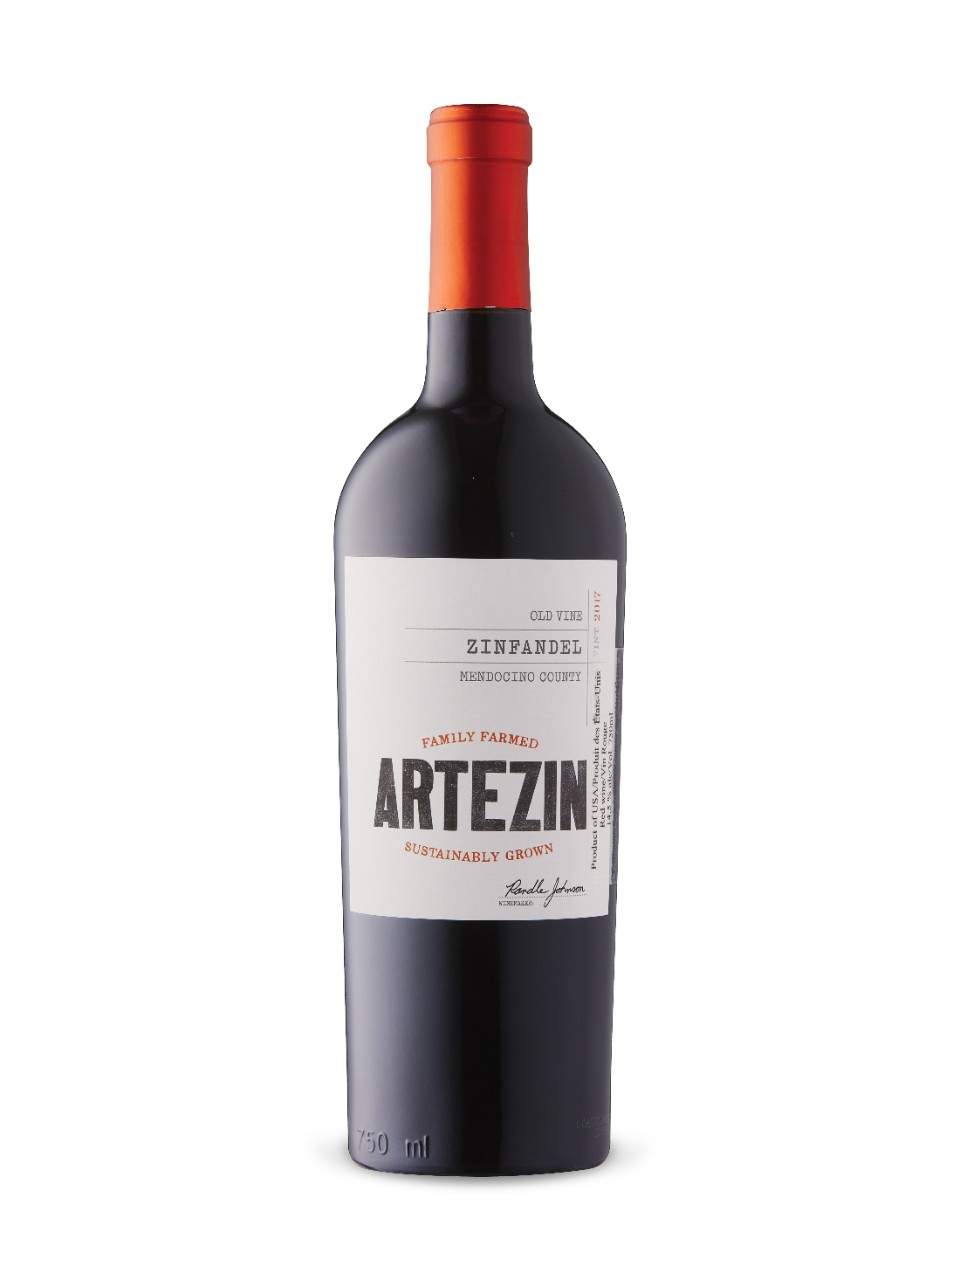 Artezin Old Vine Zinfandel 2017 from LCBO